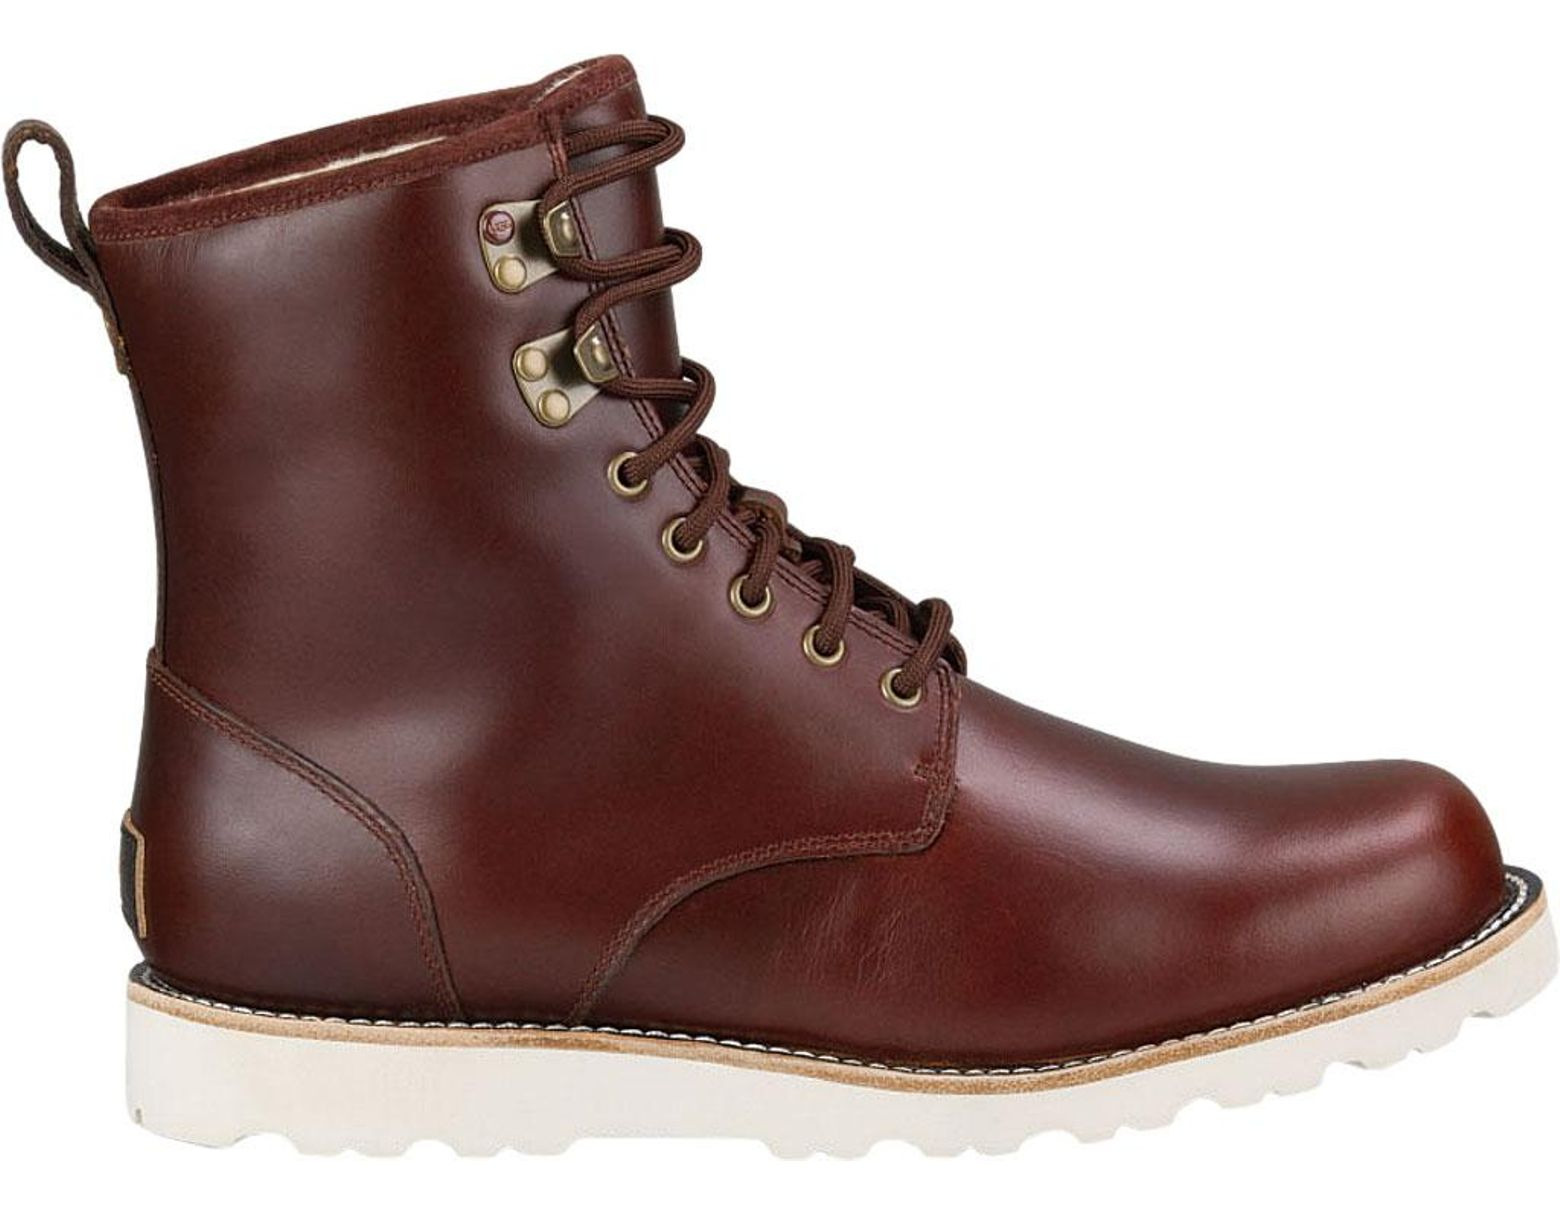 aaf587272a6 Lyst - UGG Hannen Tl Boot in Brown for Men